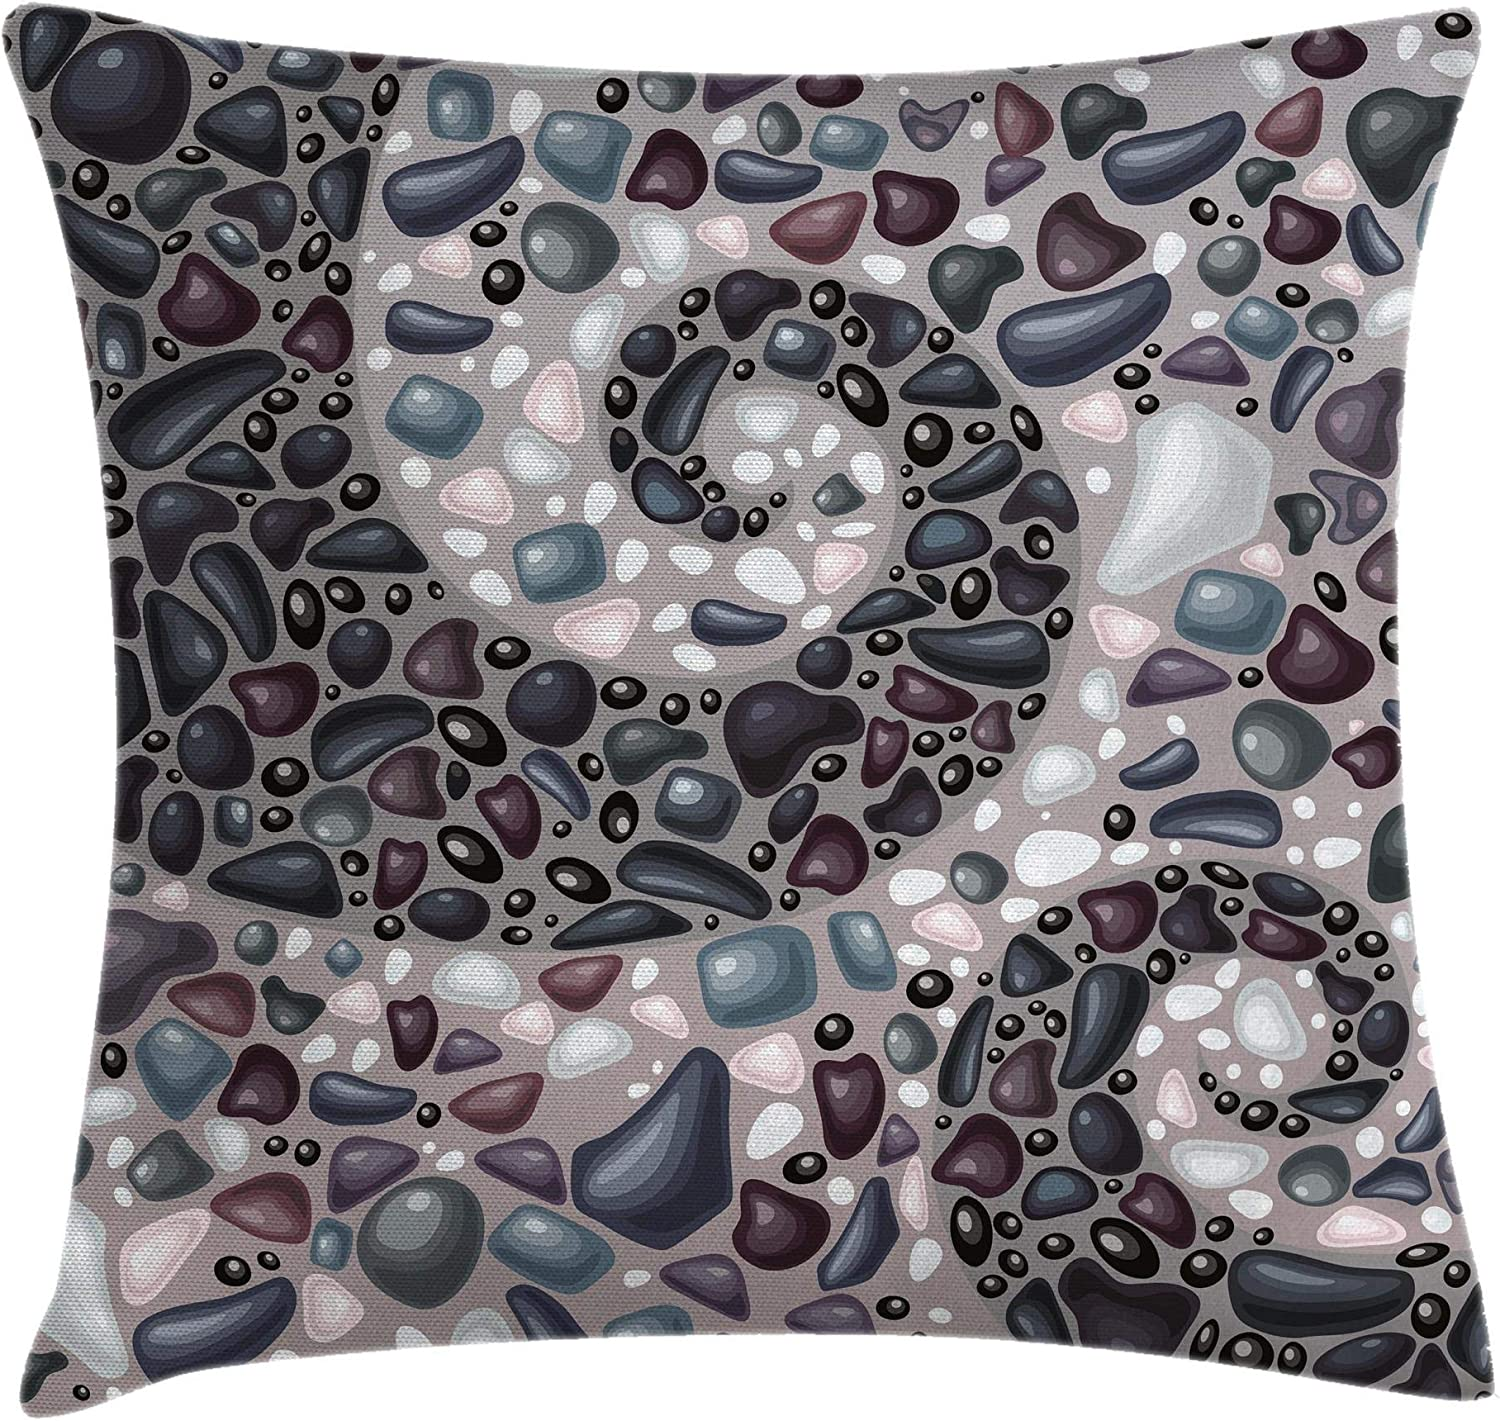 Ambesonne Nature Throw Pillow Cushion Cover, Garden Mountains Volcanic Stones Image of Pebbles on Cement Print, Decorative Square Accent Pillow Case, 16